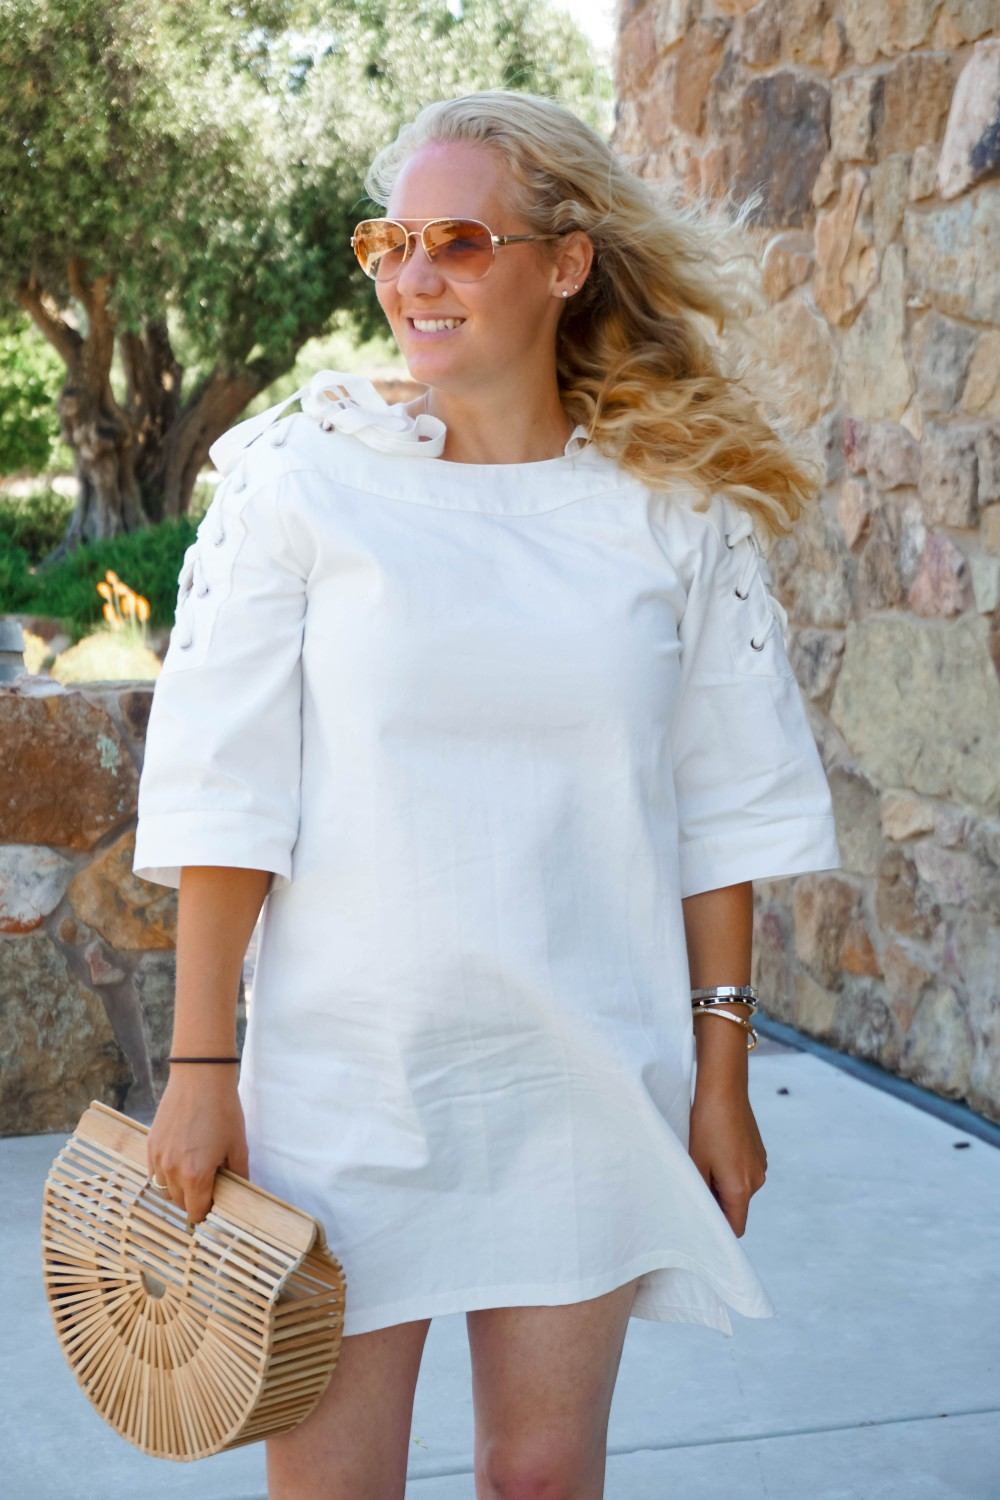 Lace-Up White Denim Dress-JOA Denim Dress-Summer Style-Bijou on the Park-Have Need Want-Outfit Inspiration-Mom Style